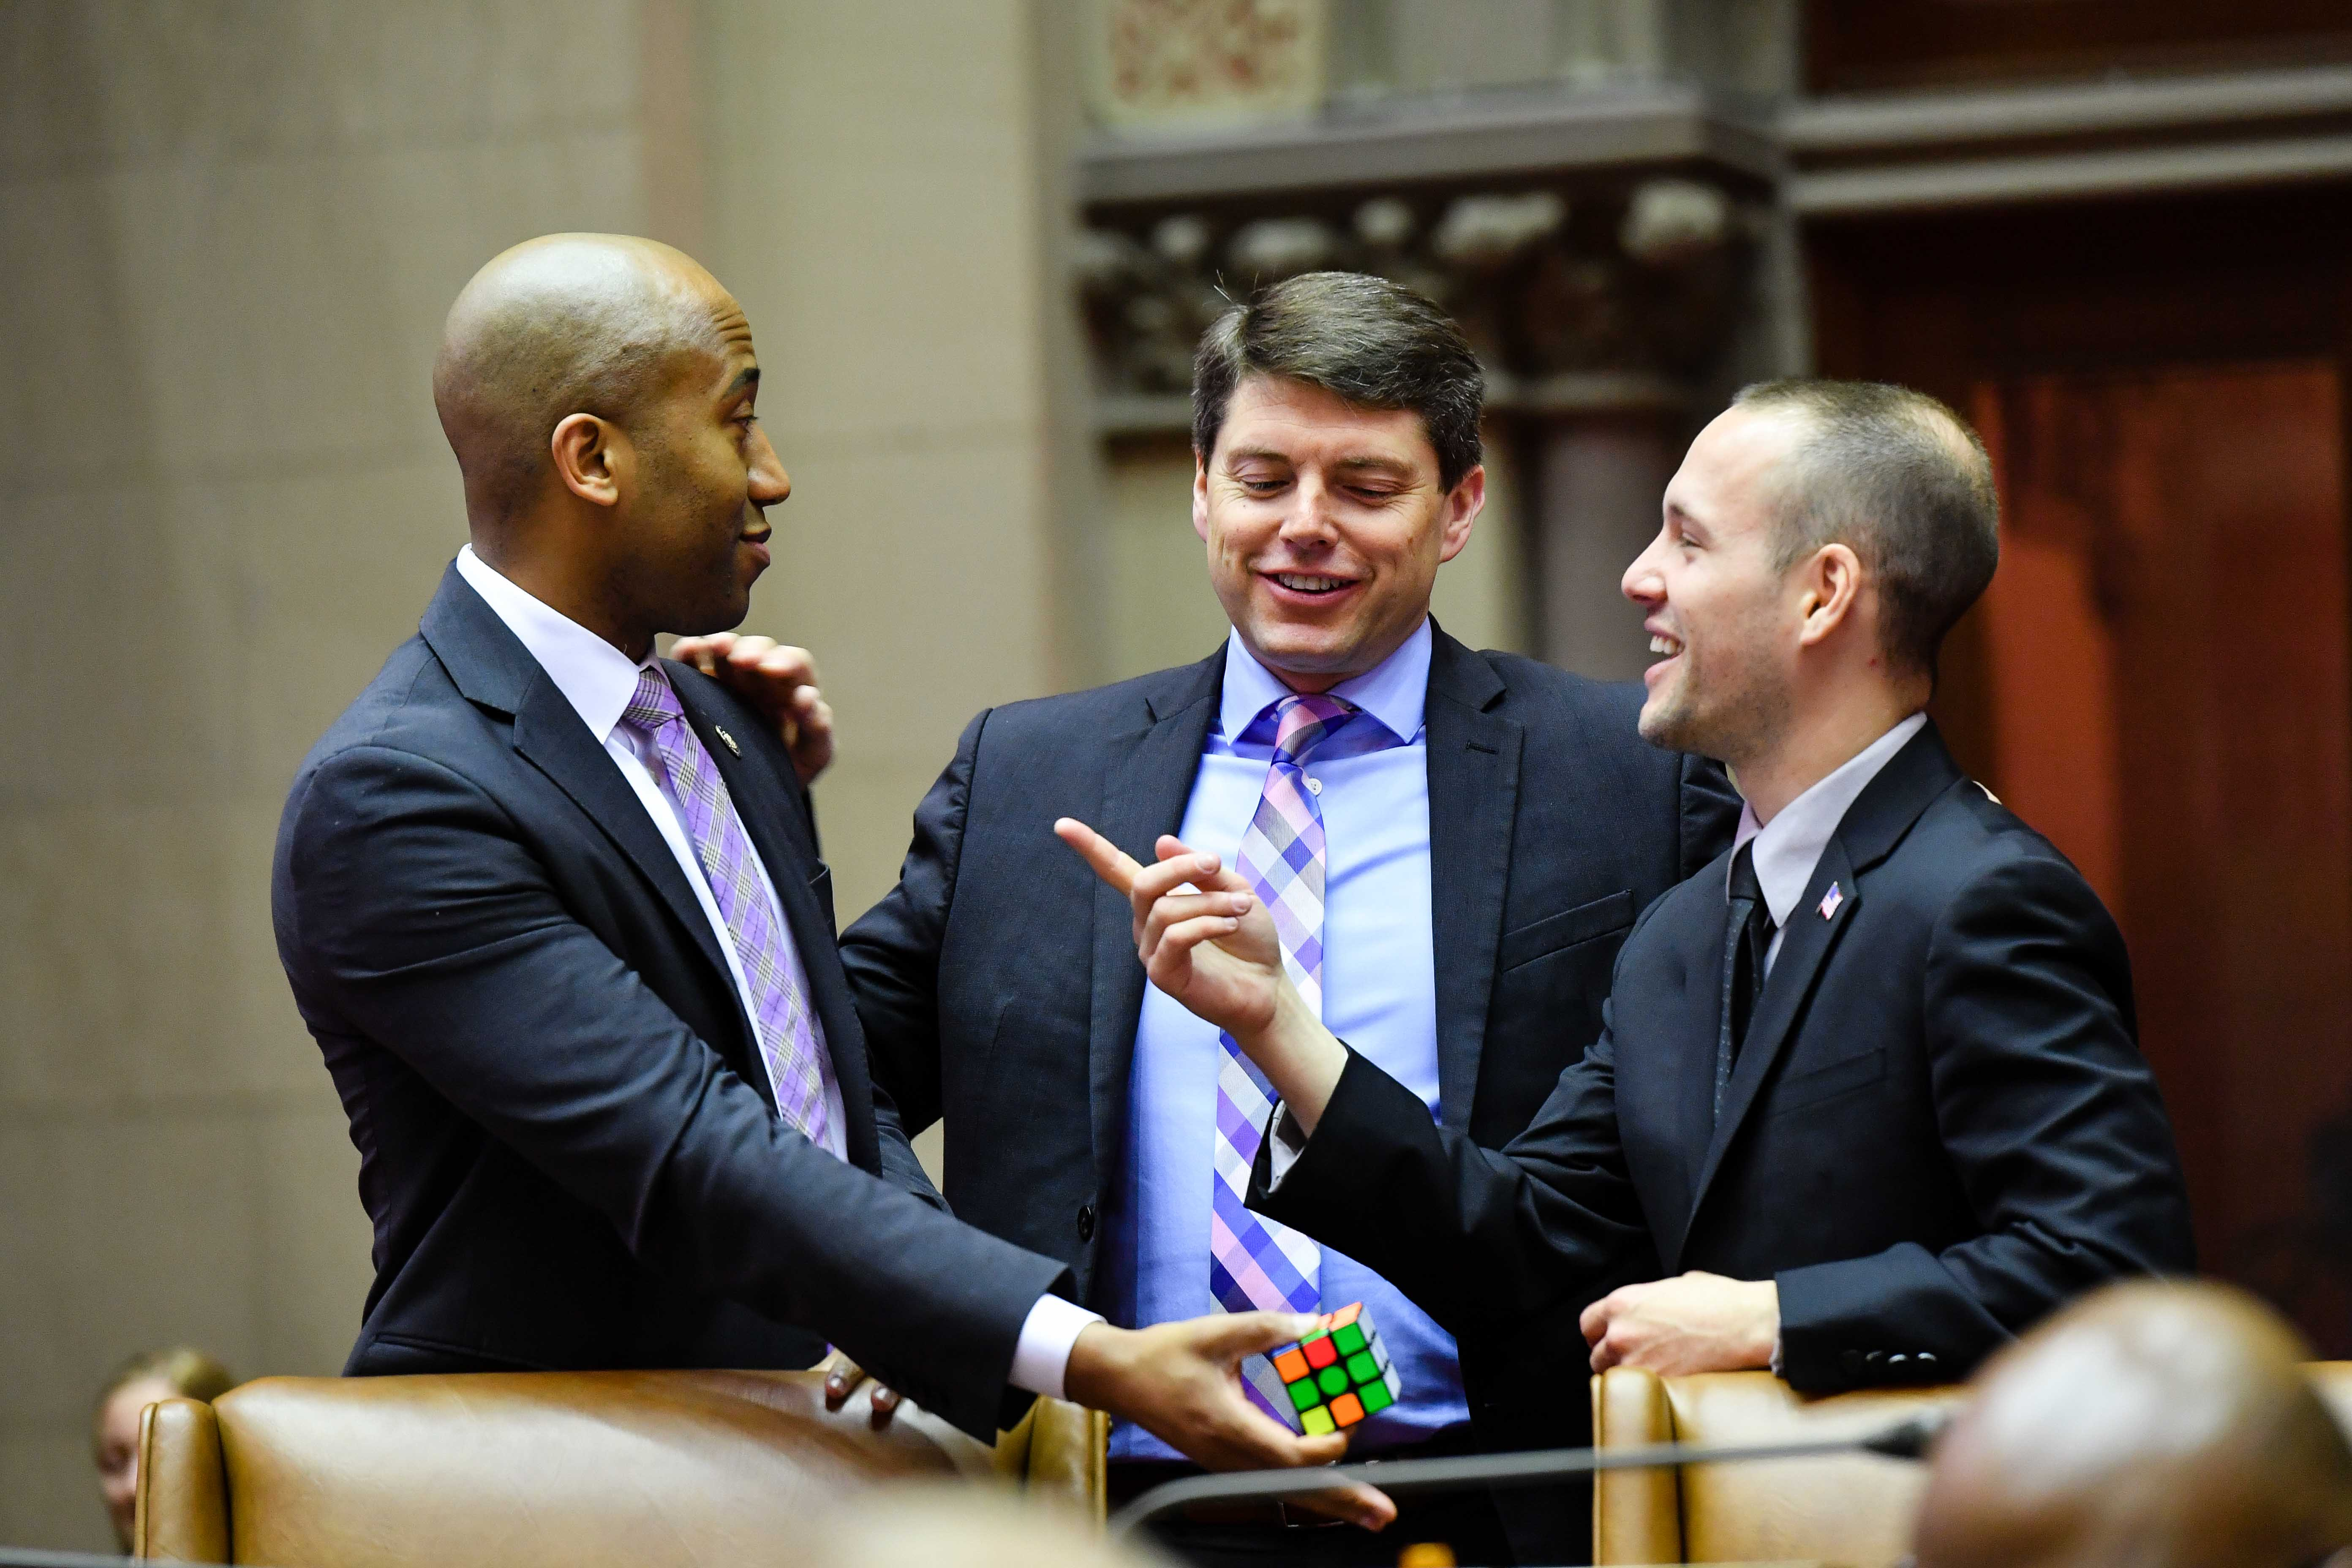 Assembly member Vanel bonding over Rubik's cubes with Assembly colleagues.